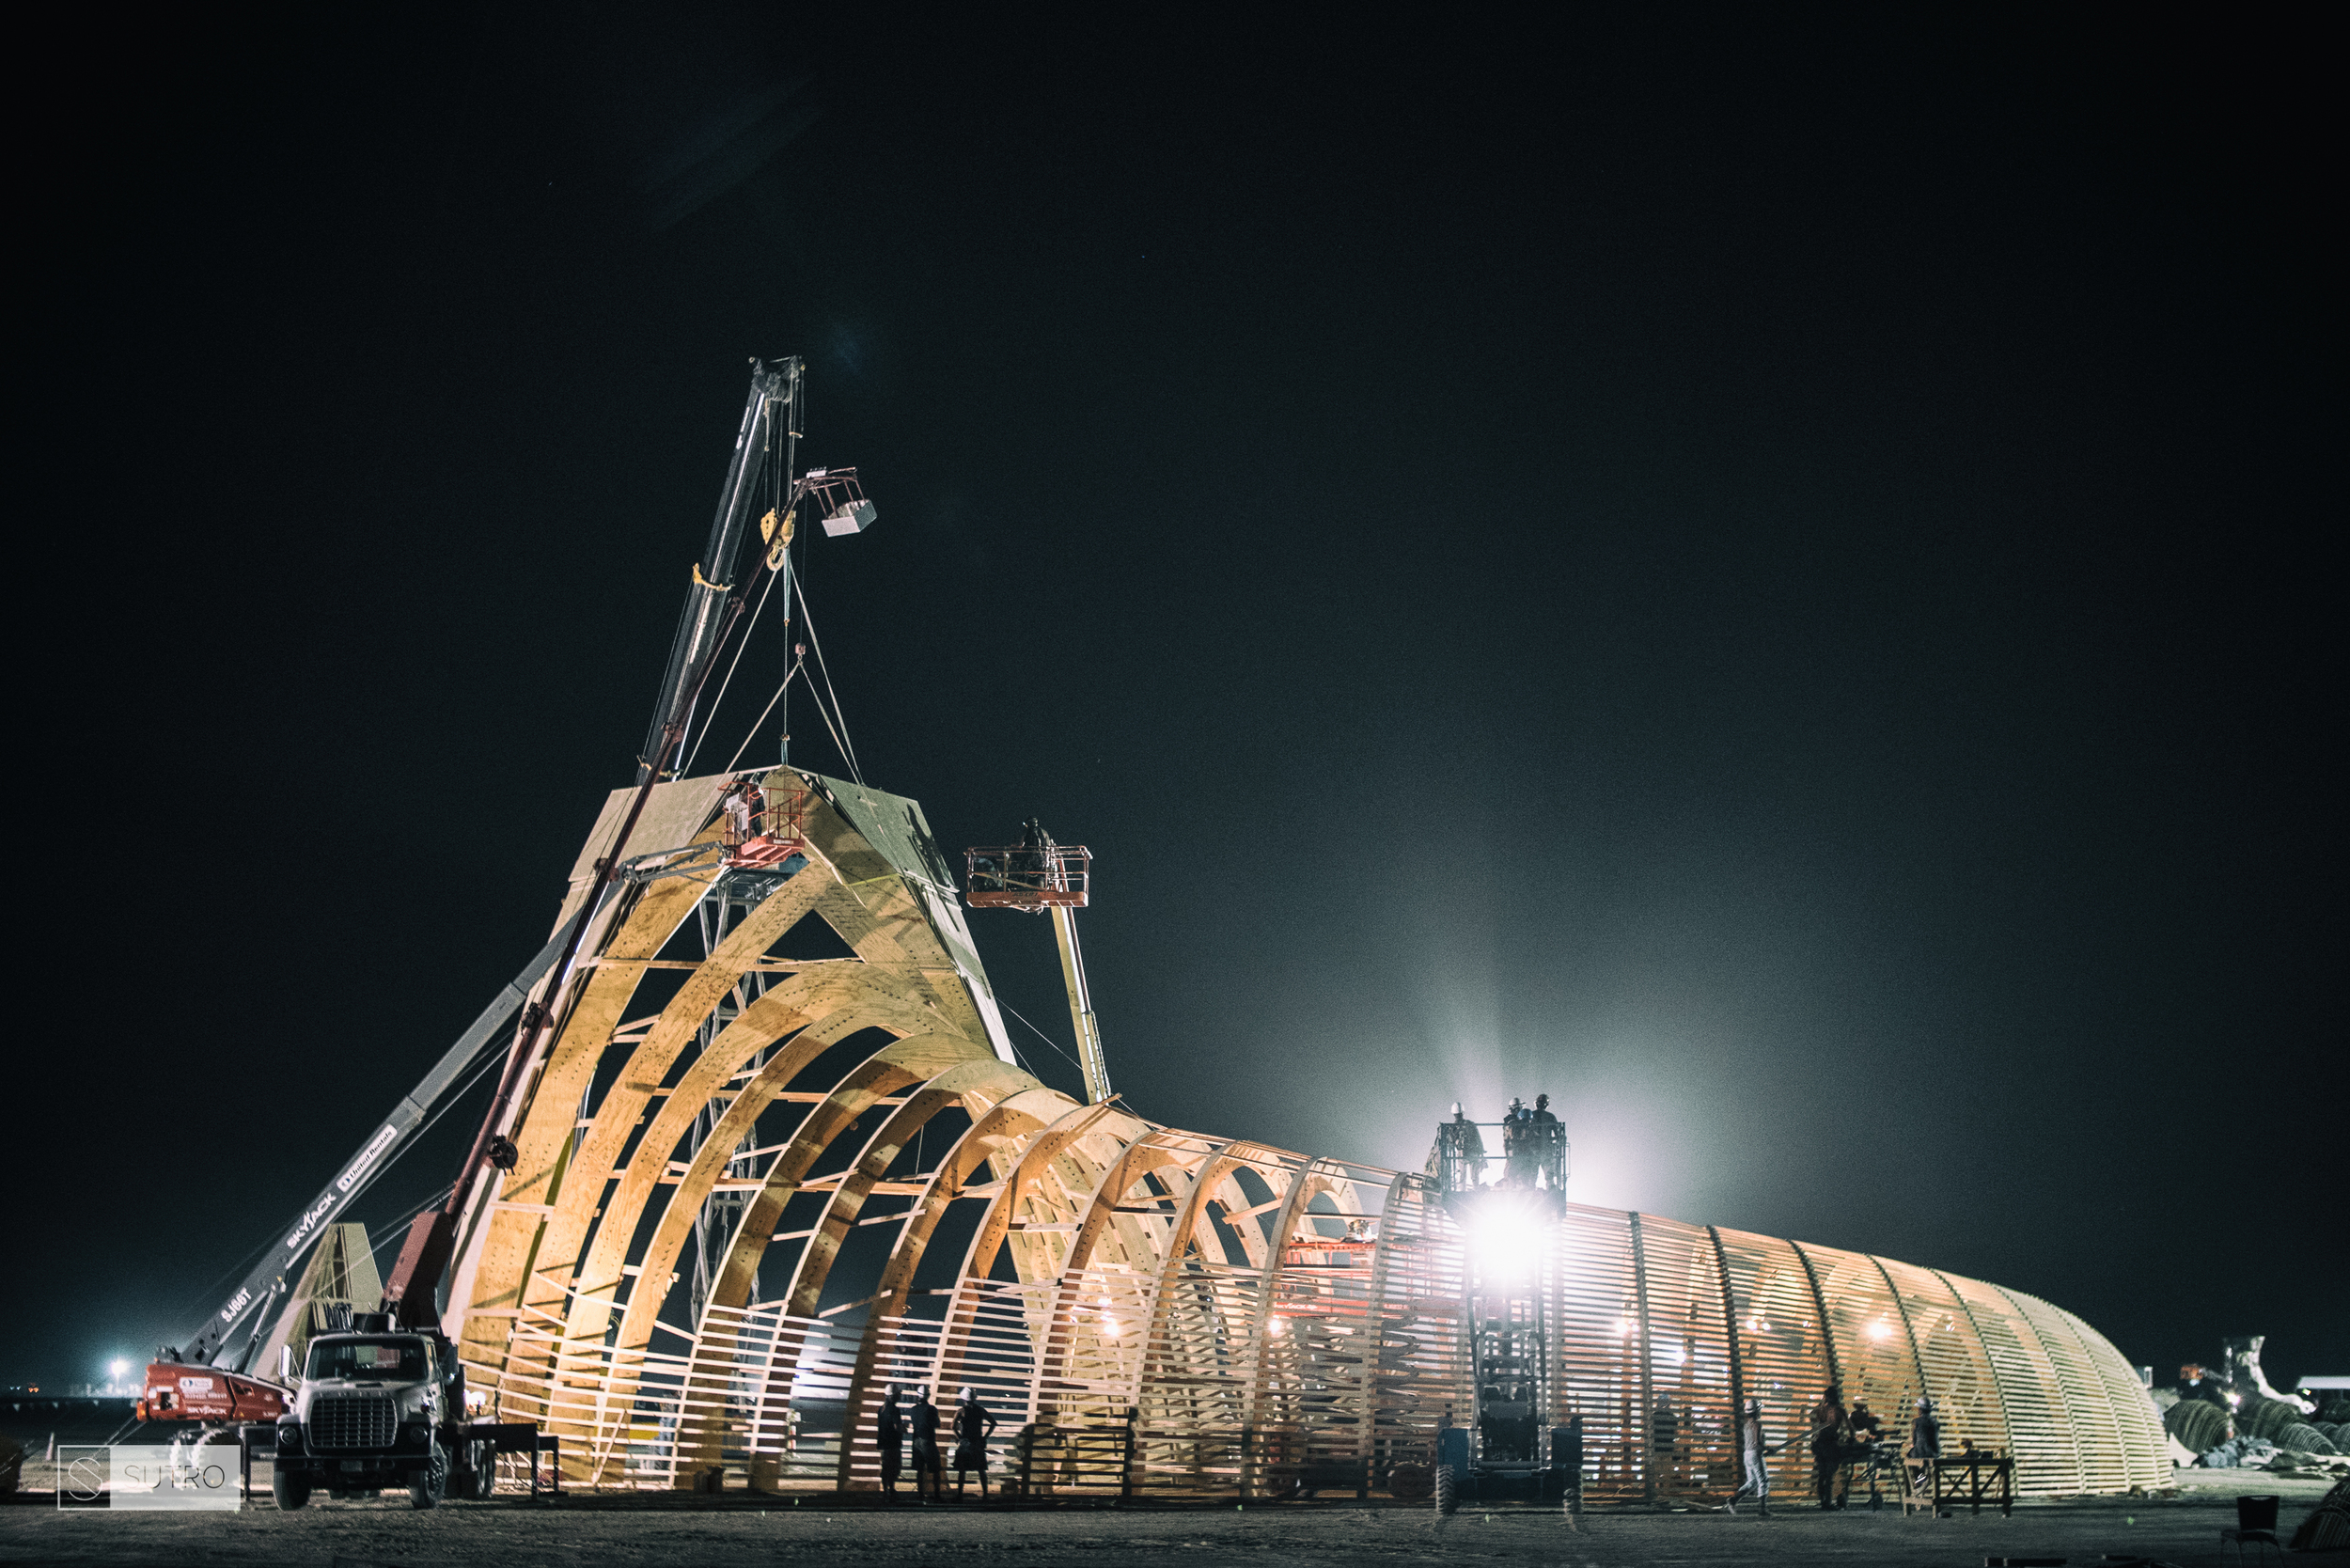 Flood lights illuminate everything so that night crew members can keep working. At this point, 24/7 crews work tirelessly to make sure construction runs as smoothly as possible.